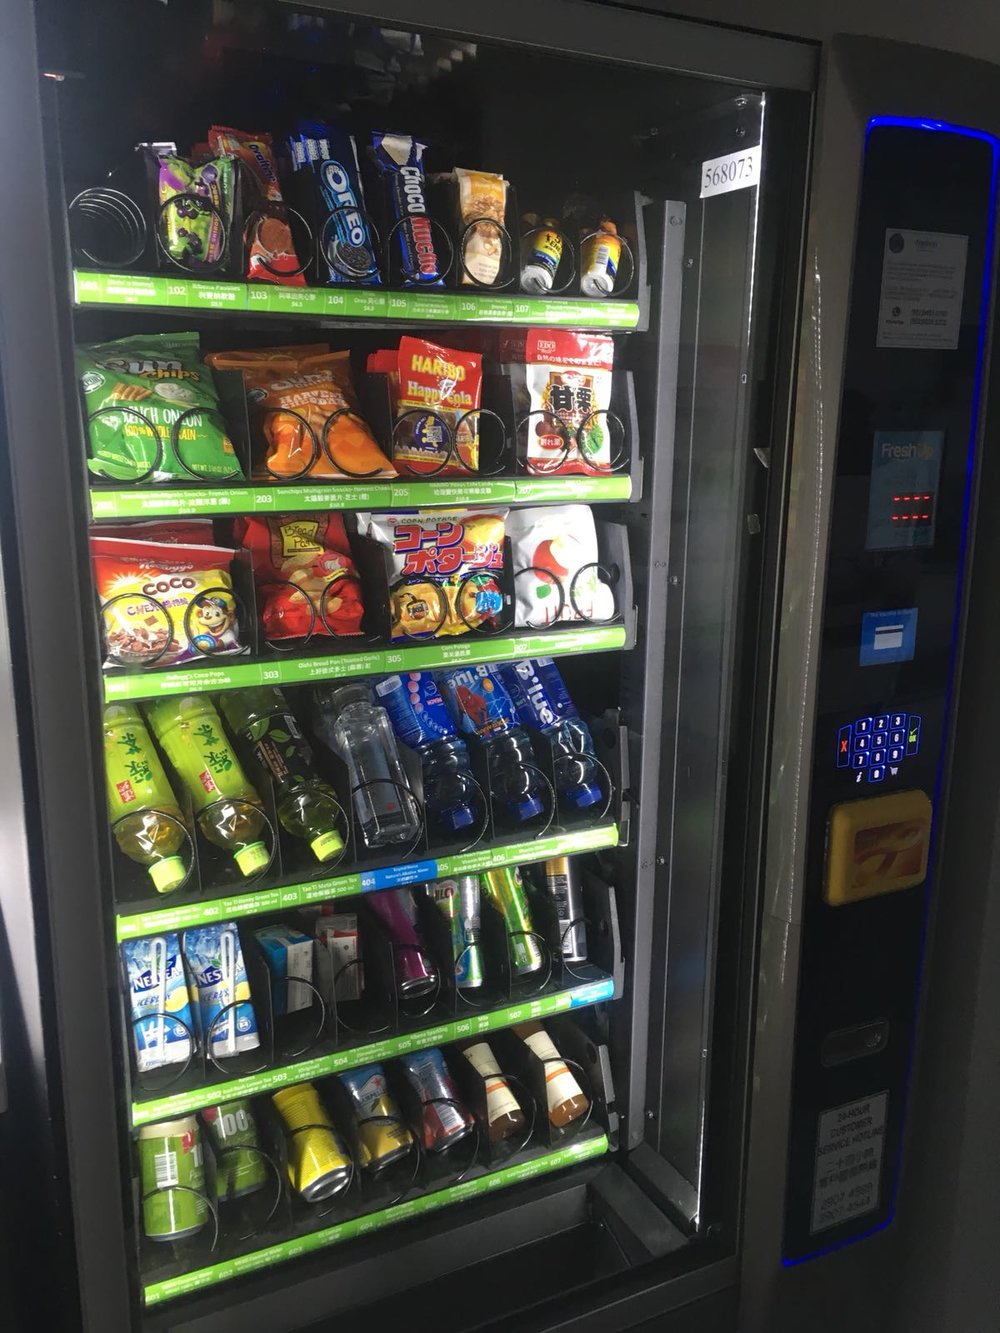 Freshup, vending machine hk, interactive, food, beverage, smart retail, convenient, vending services, professional, universities, CUHK